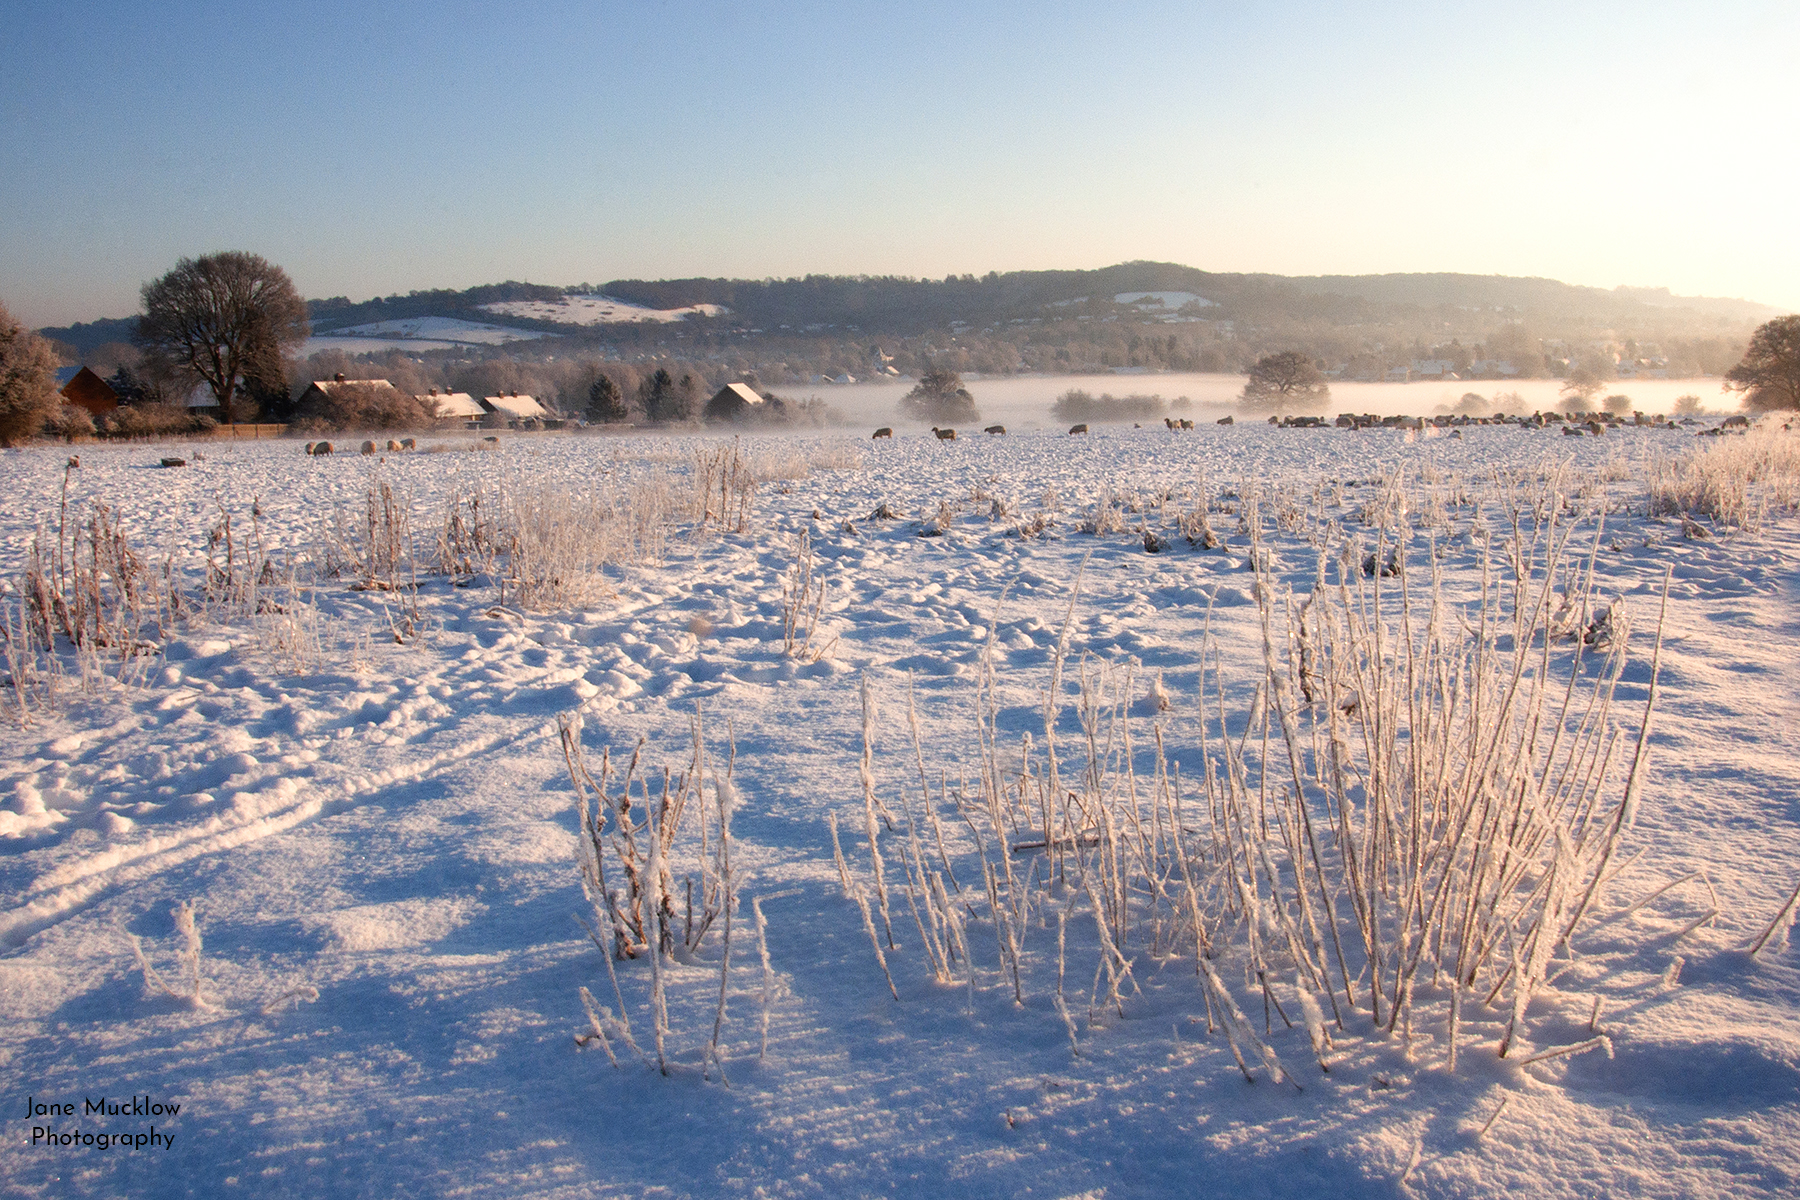 Photograph by Jane Mucklow of a snowy sunrise over a sheep field, the view towards Otford, Kent